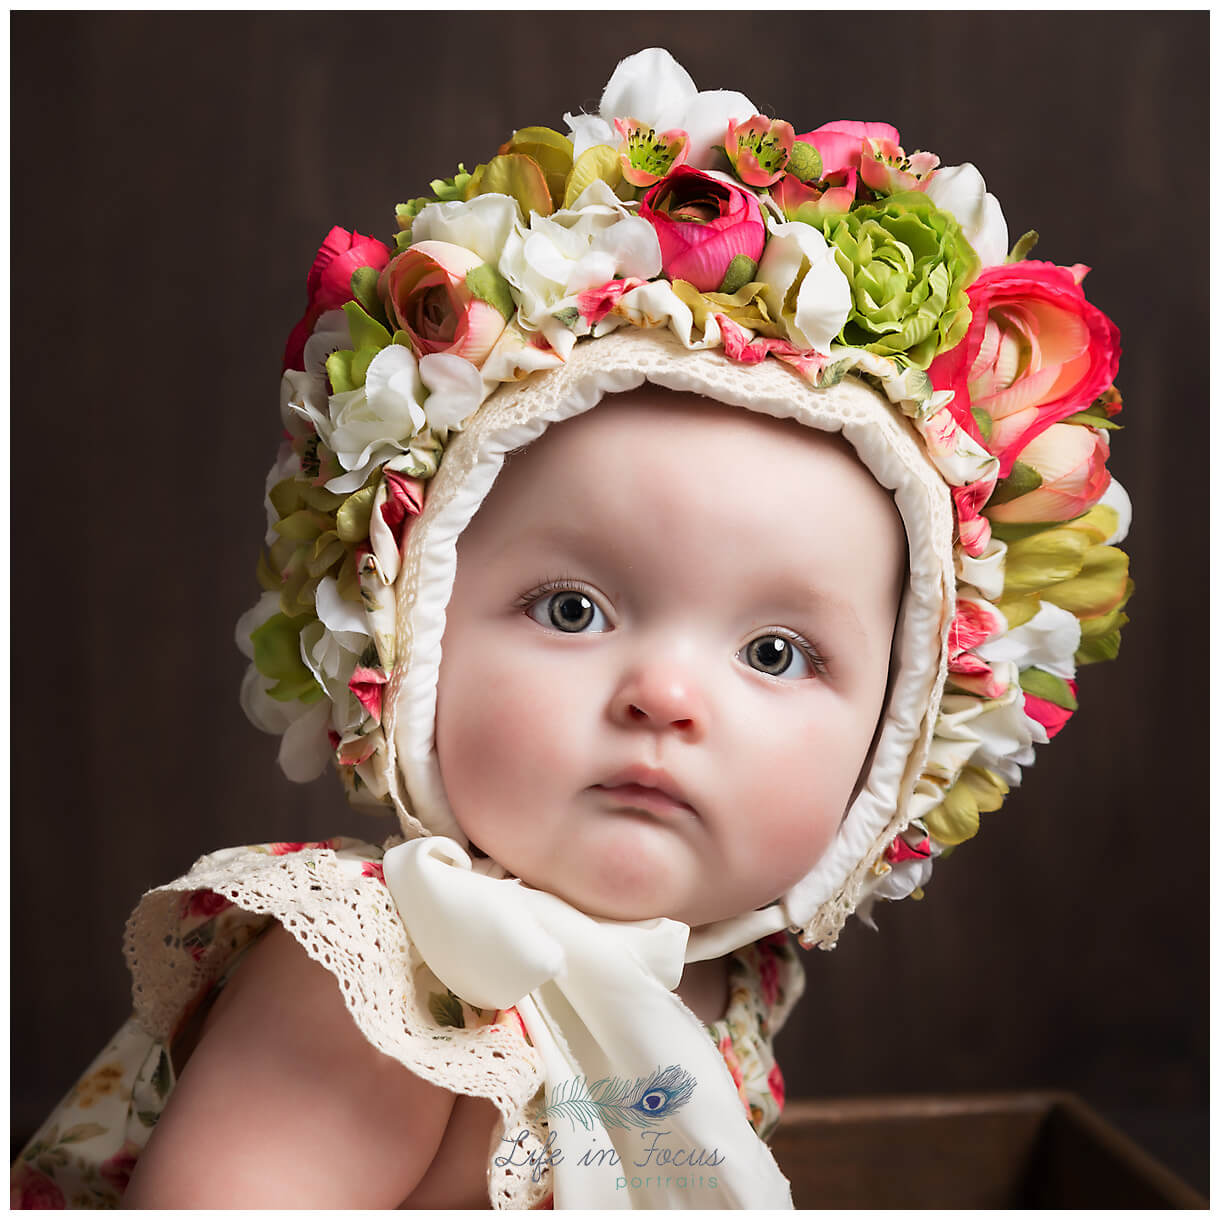 baby in flower bonnet little sitter session Life in Focus Portraits baby milestone photography Rhu Helensburgh Cardross